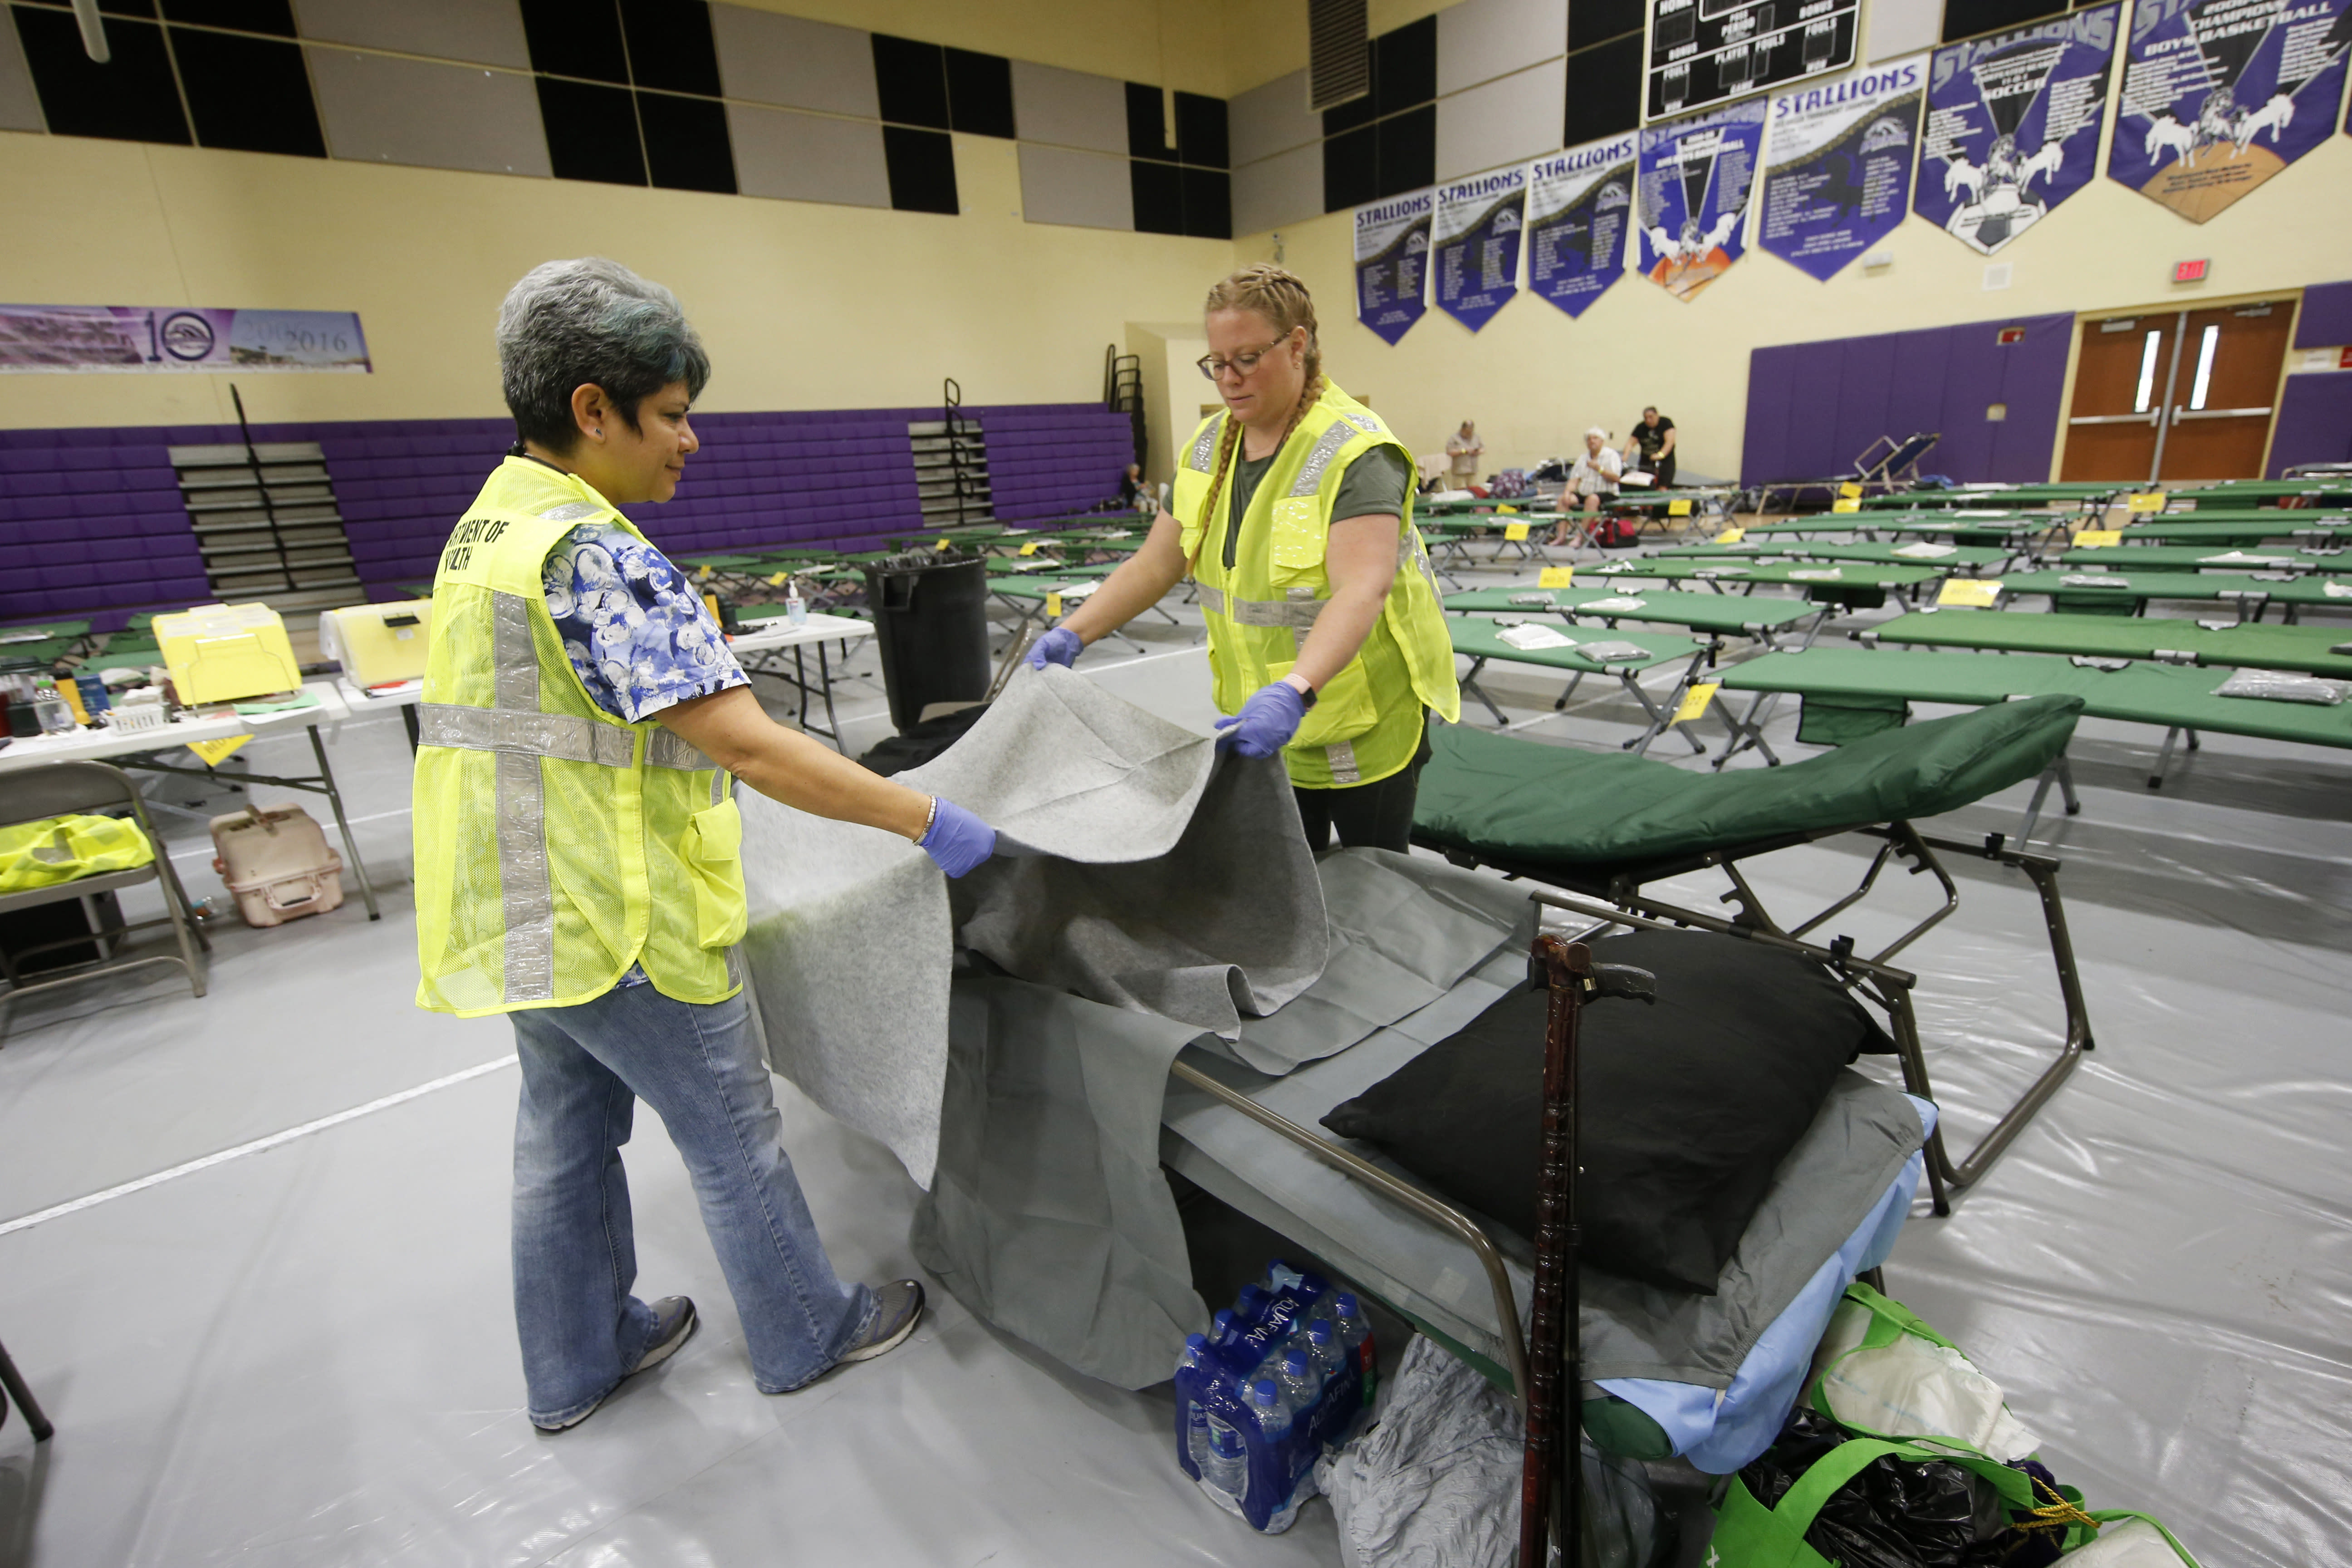 Florida Department of Health staffers set up beds at an evacuation shelter for people with special needs in preparation for Hurricane Dorian at Dr. David L. Anderson Middle School in Stuart Fla. Sunday Sept. 1 2019. Some coastal areas are under a